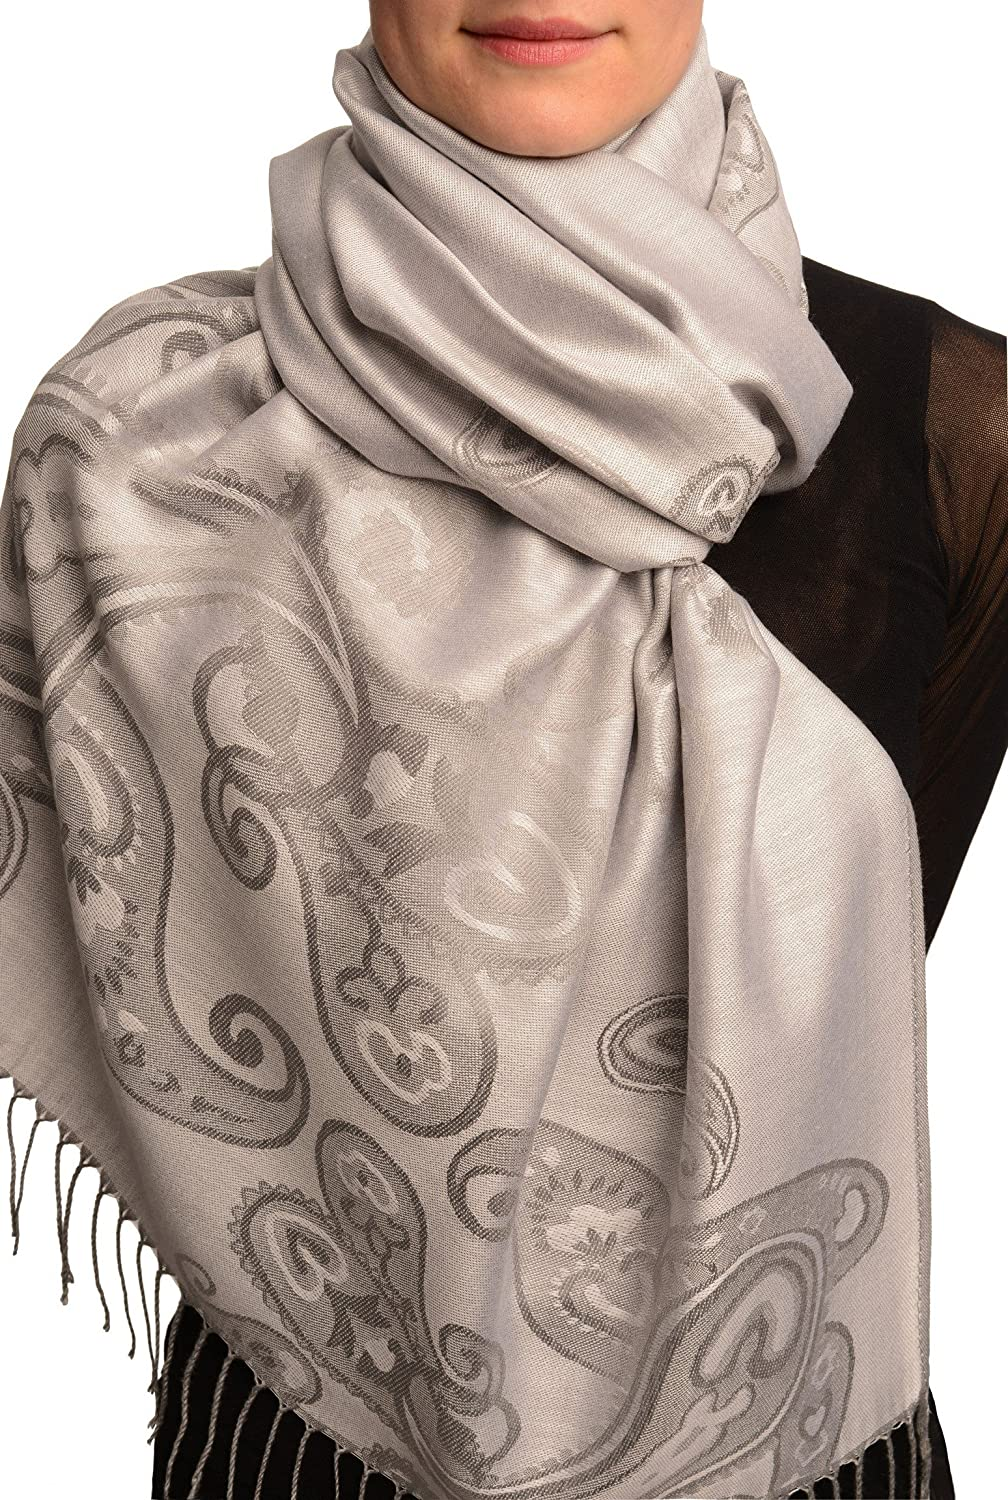 Joined Paisleys On Silver Grey Pashmina Feel With Tassels - Scarf